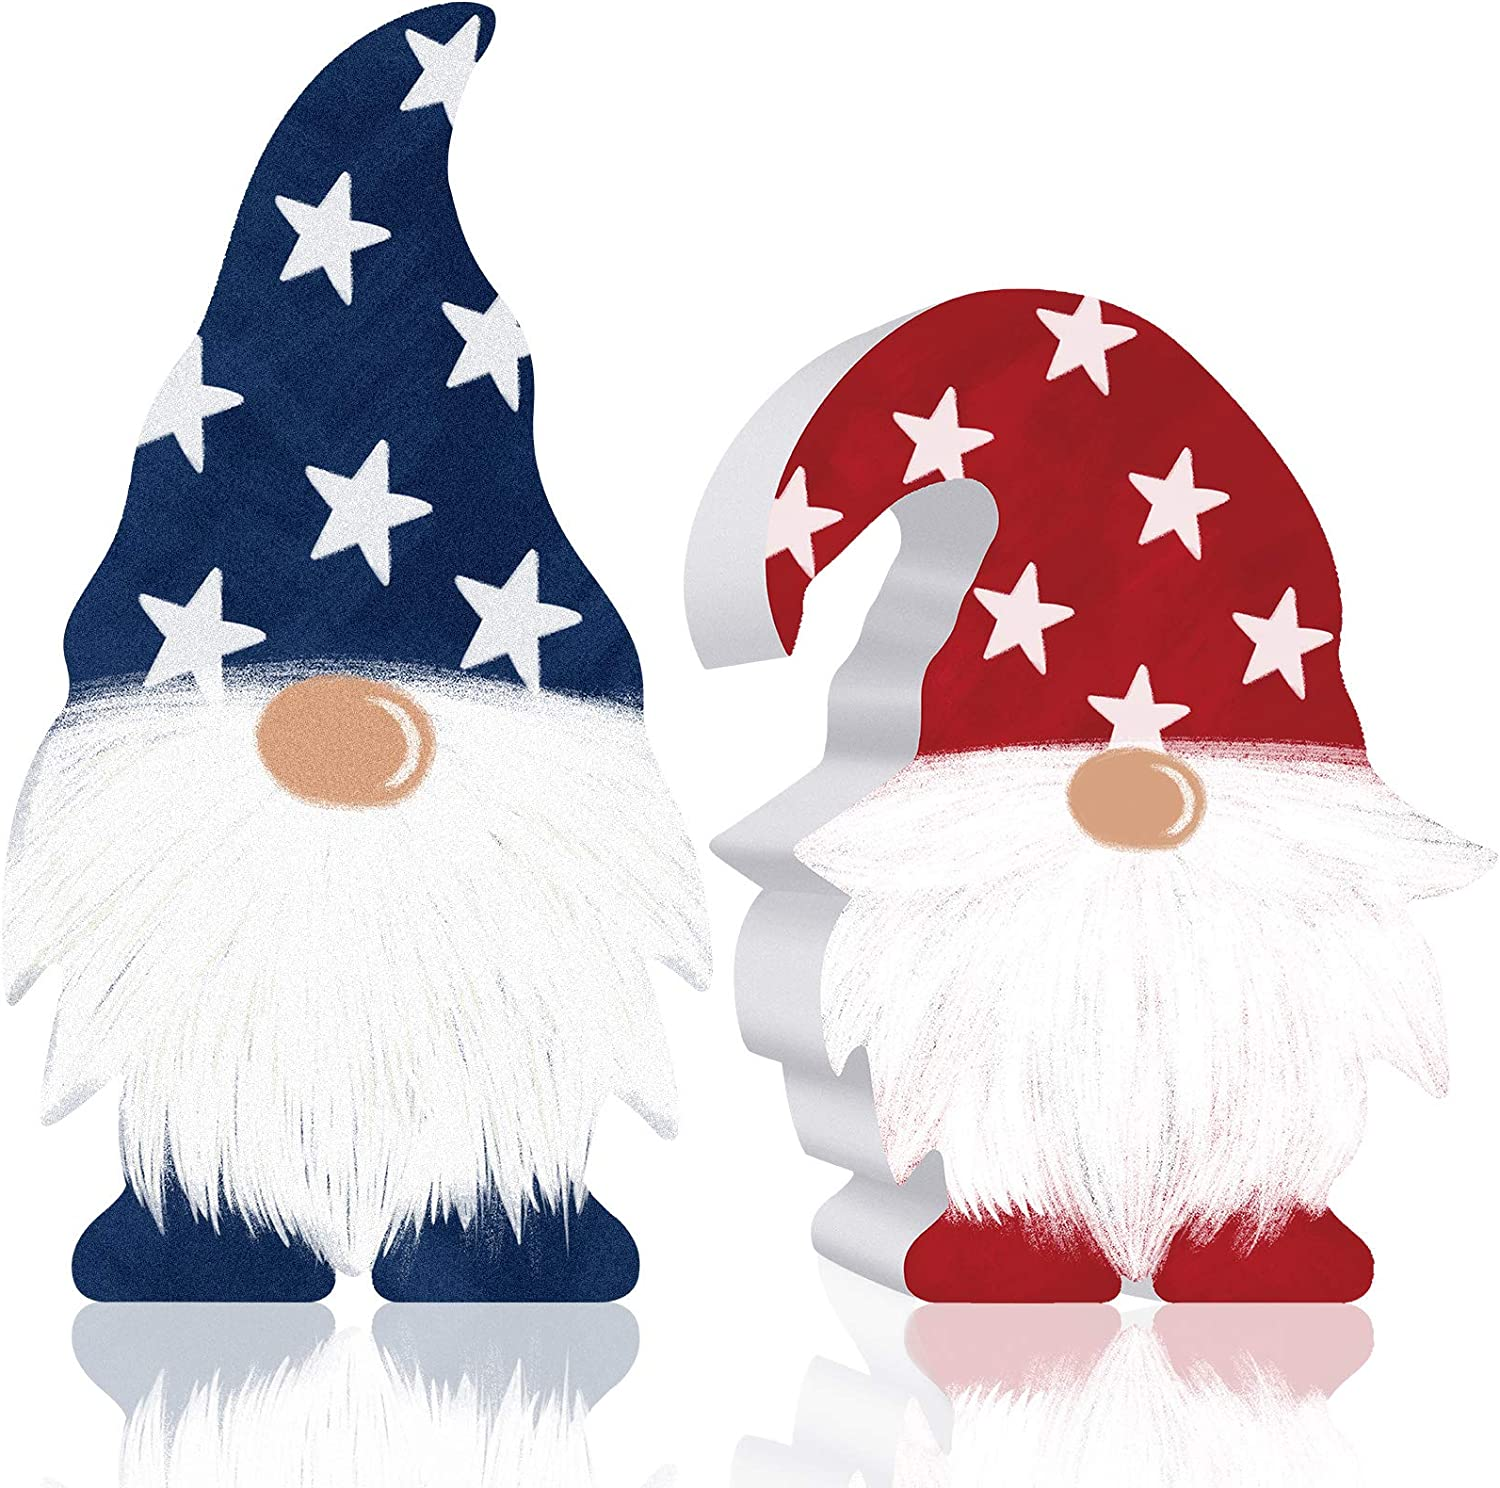 2 Pieces Patriotic Gnome Decor Scandinavian Wooden Sign 4th of July Elf Gnome Farmhouse Kitchen Decor Memorial Day Birthday Tiered Tray Decoration Table Decorations for Independence Day American Decor